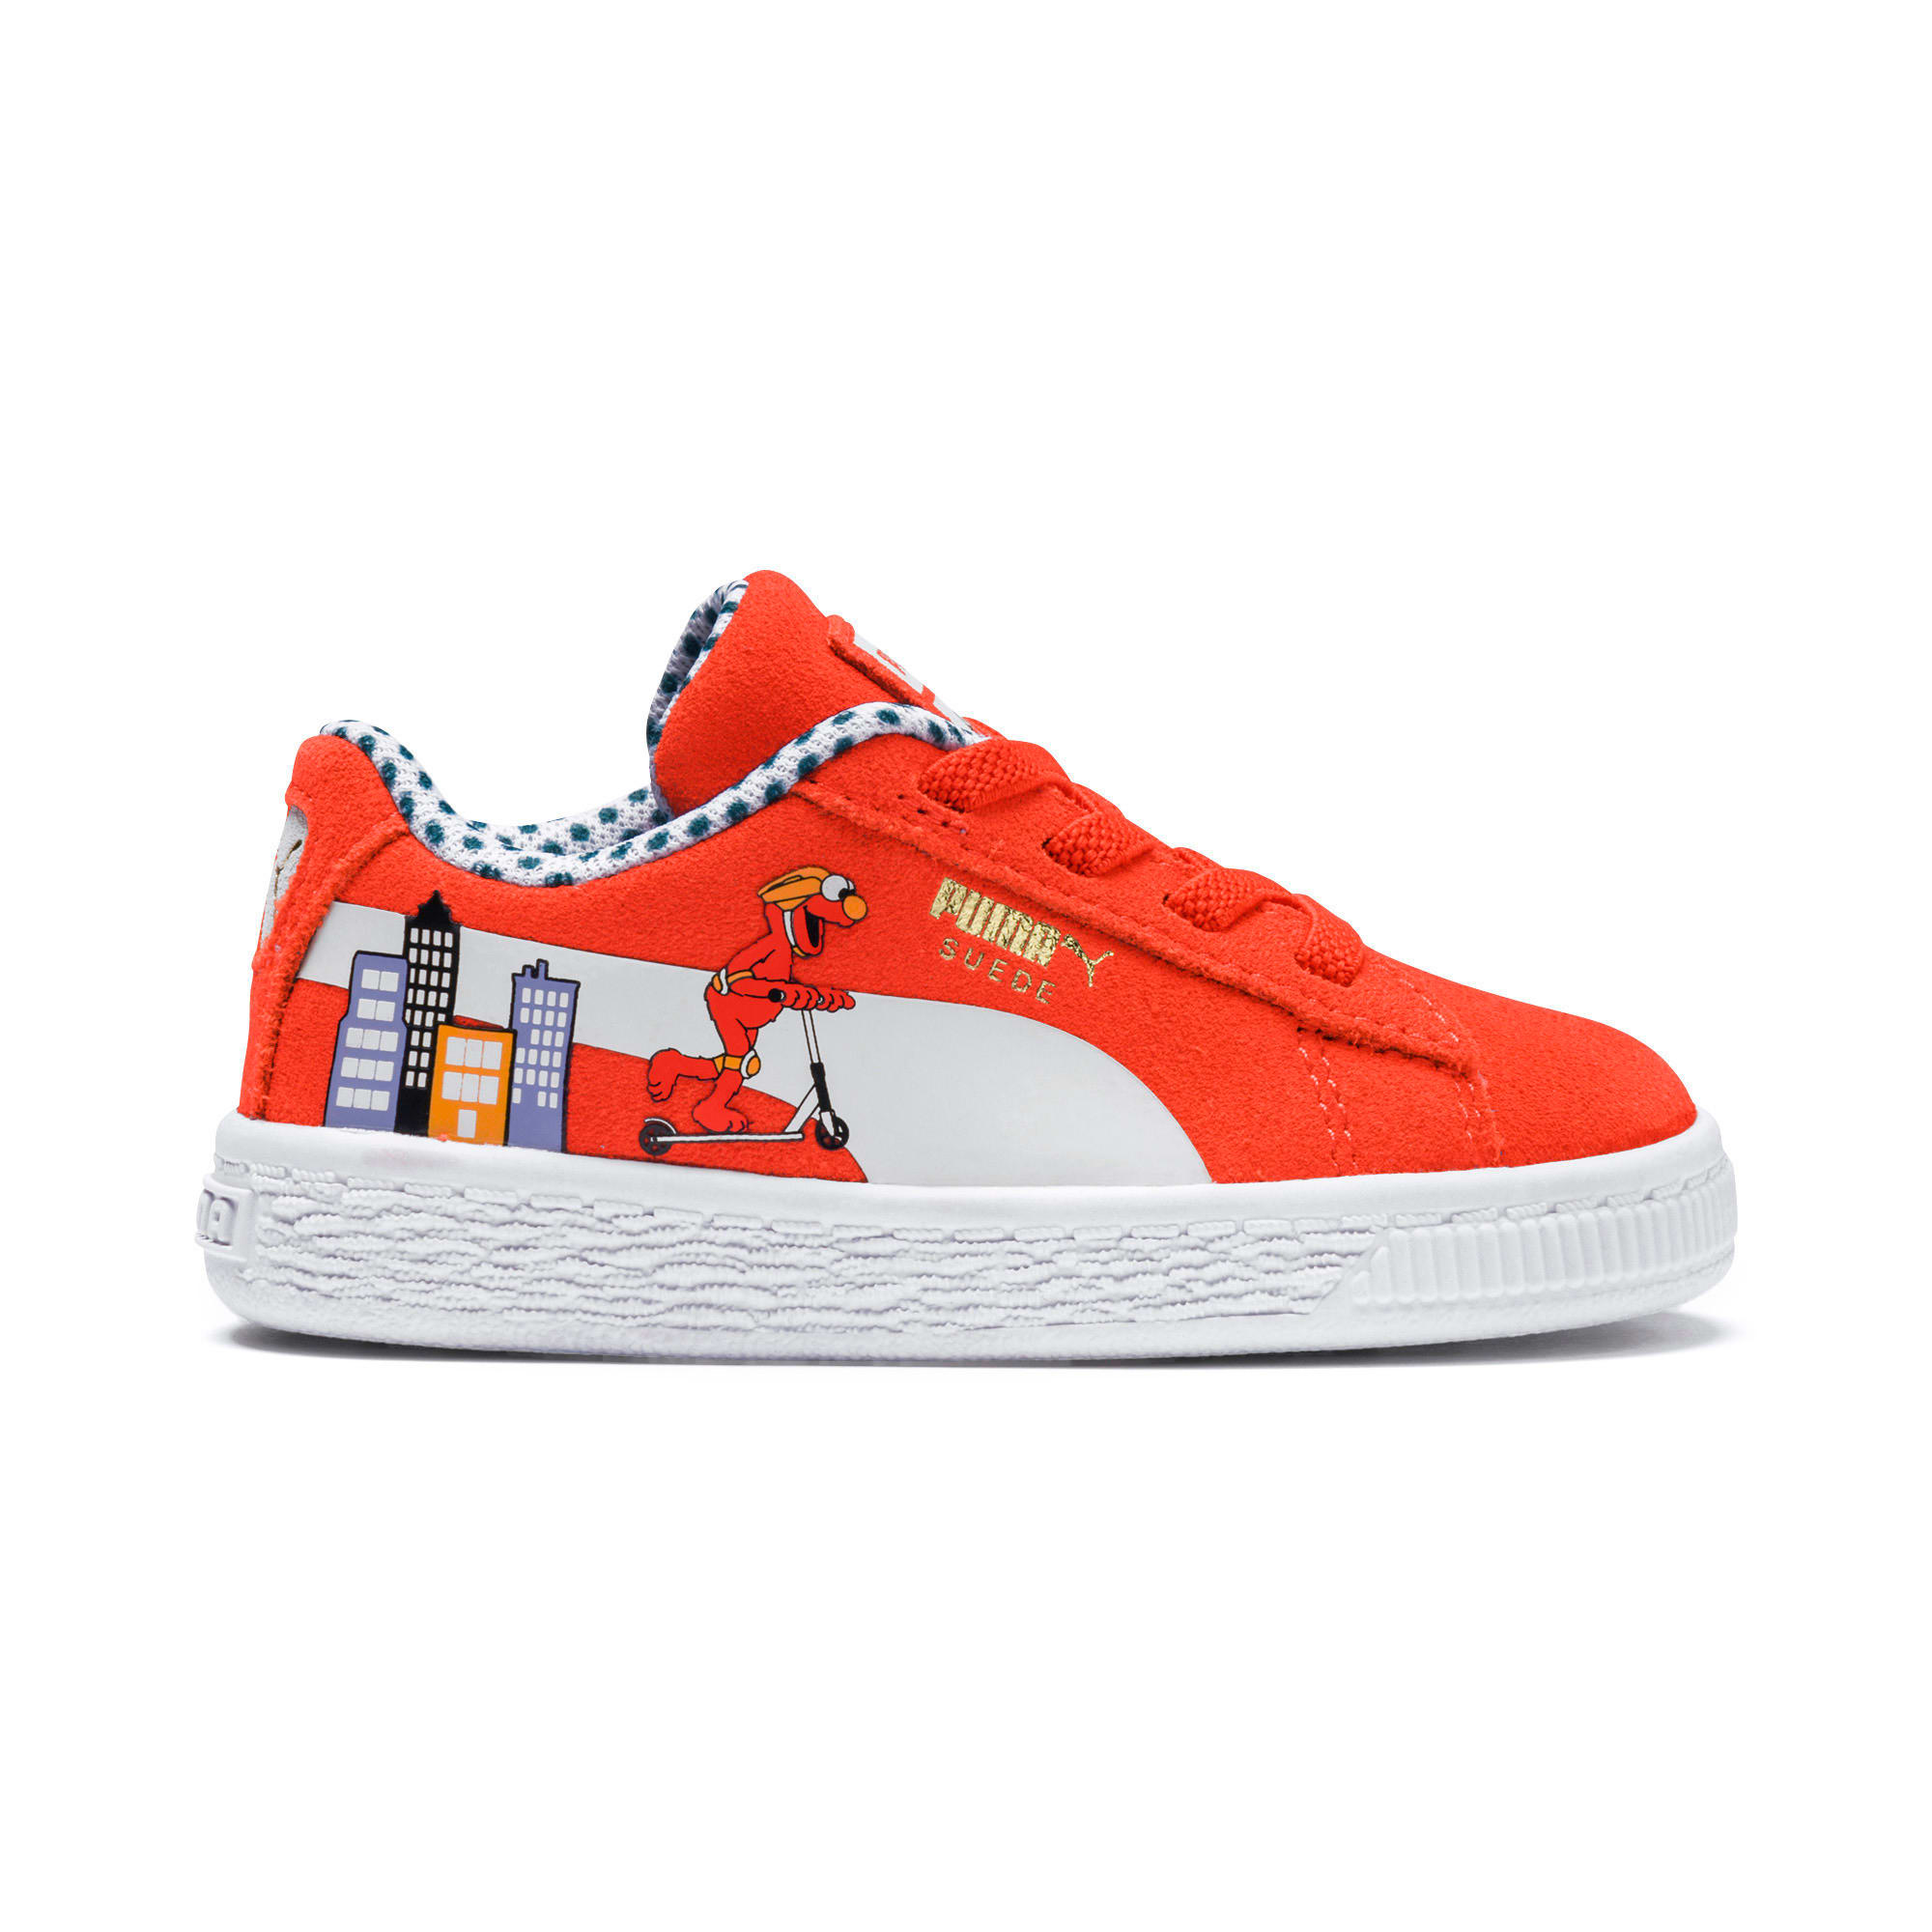 Thumbnail 7 of Sesame Street Suede Babies' Trainers, Cherry Tomato-Puma White, medium